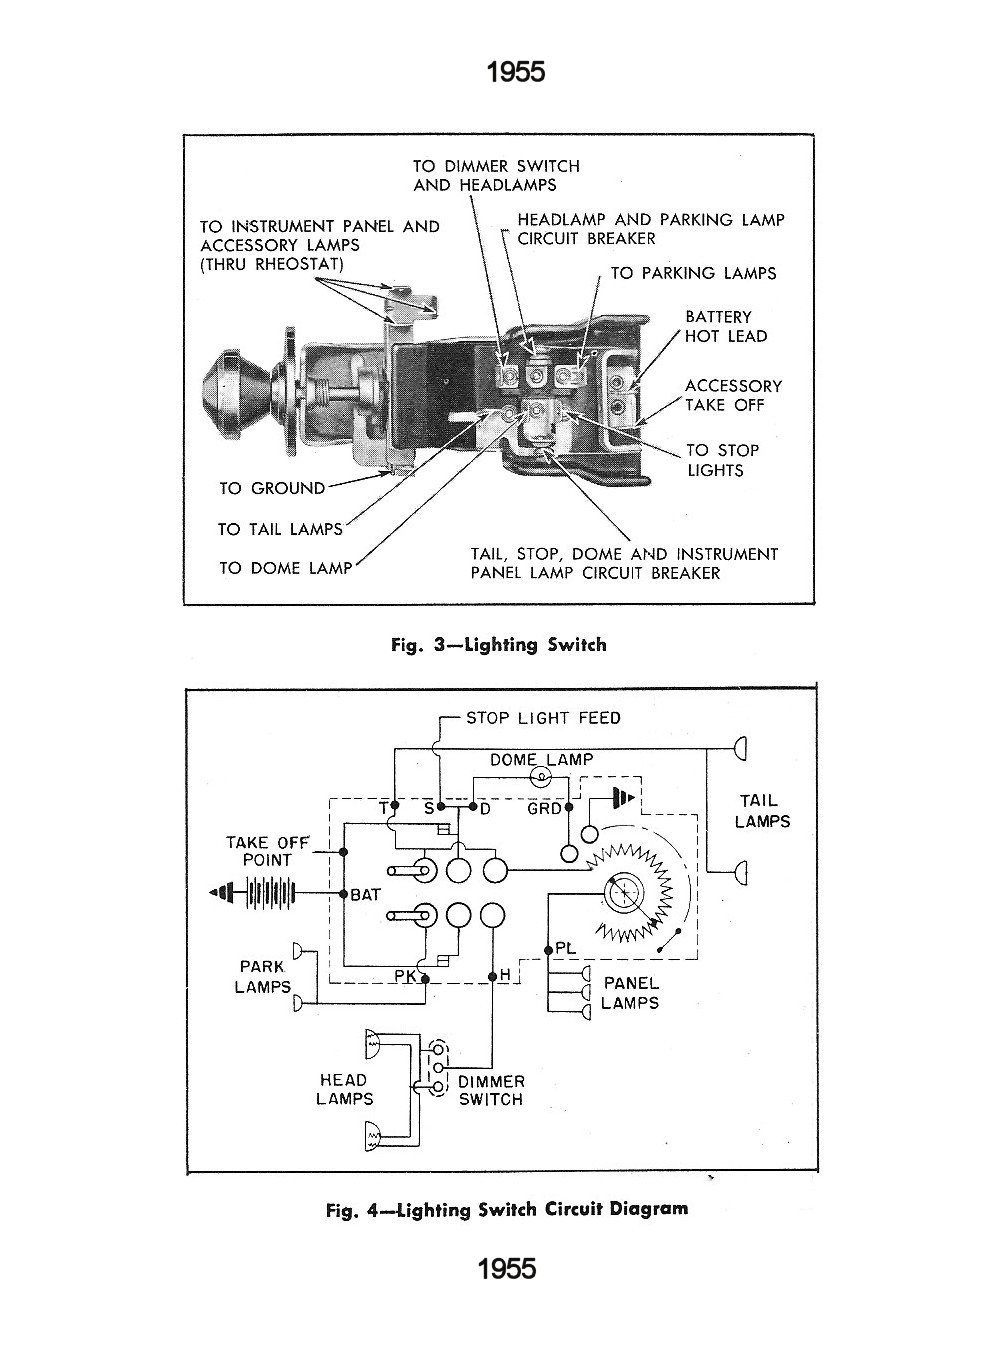 55csm1204a chevy wiring diagrams 1961 Impala at creativeand.co